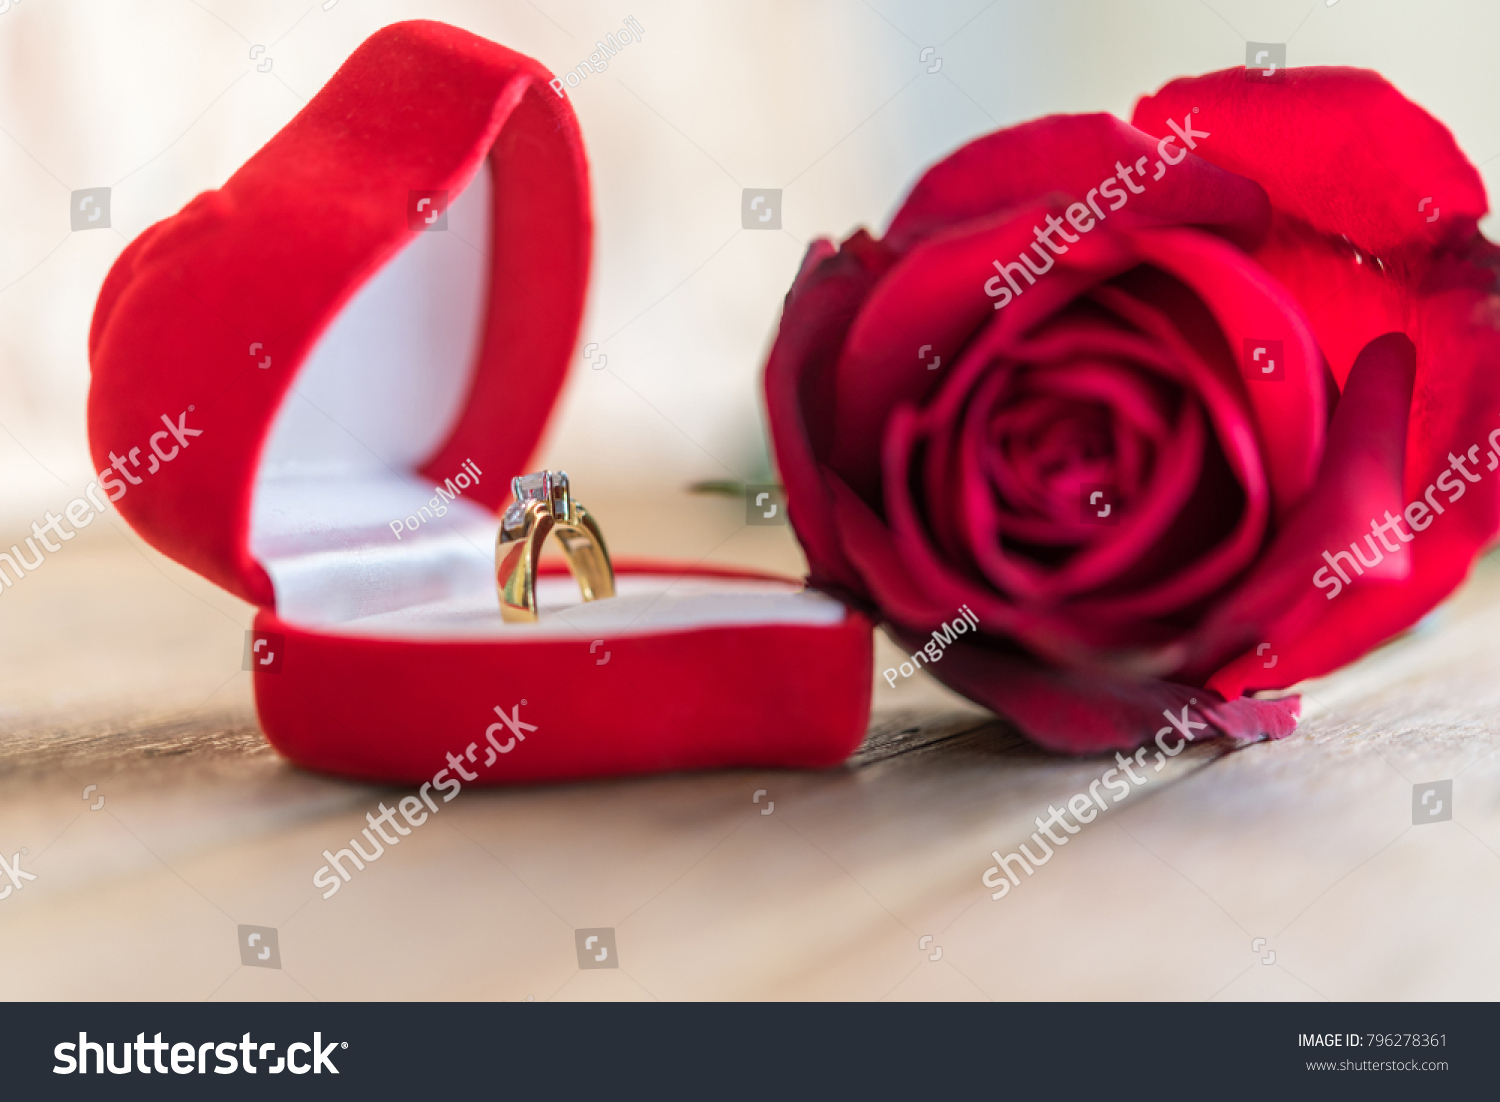 Red rose flower nature beautiful flowers stock photo royalty free red rose flower nature beautiful flowers from the garden and diamond necklace diamond ring accessories for izmirmasajfo Images